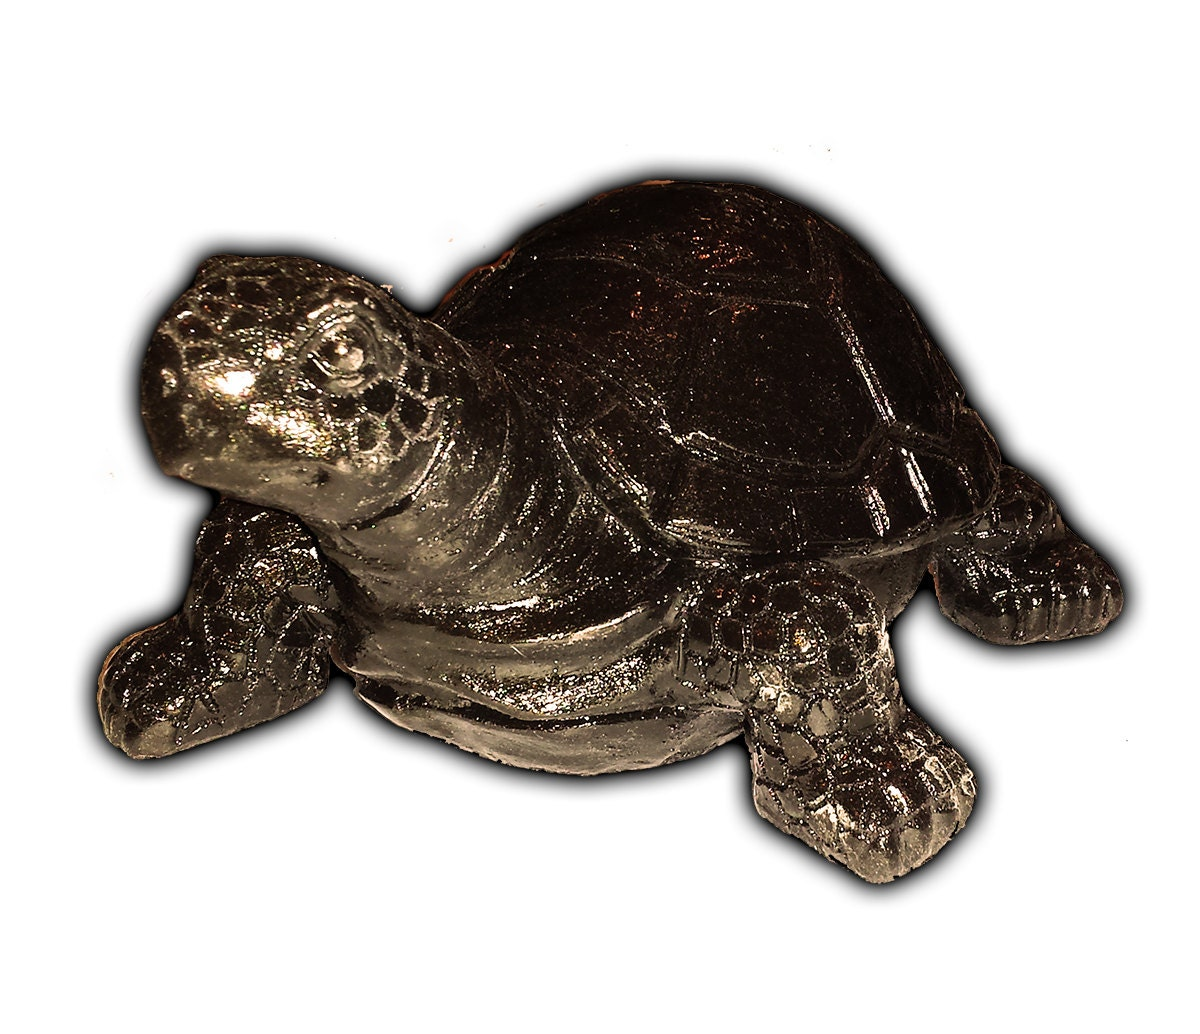 Turtle home decor outdoor decor statue garden decor home for Turtle decorations for home